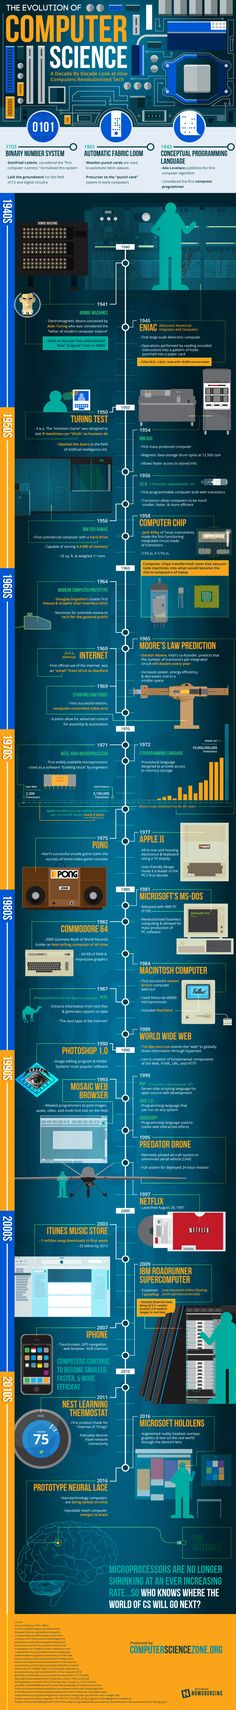 computer and its evolution Over the years, ibm has lost much of its influence in directing the evolution of pcs therefore after the release of the first pc by ibm the term pc increasingly came to mean ibm or ibm-compatible personal computers, to the exclusion of other types of personal computers, such as macintoshes.